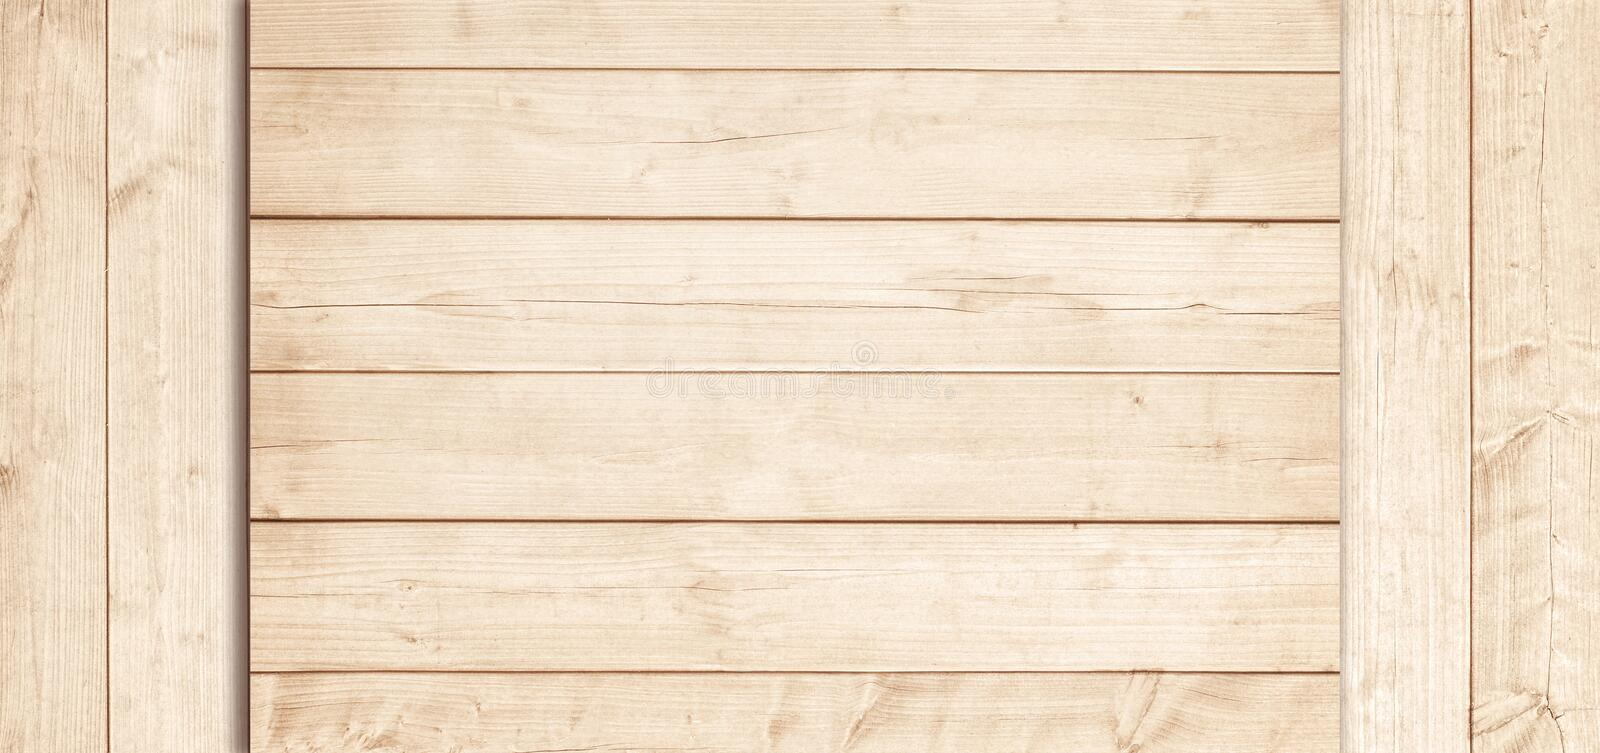 Light brown wooden planks, tabletop or floor surface. Wood texture. stock photos